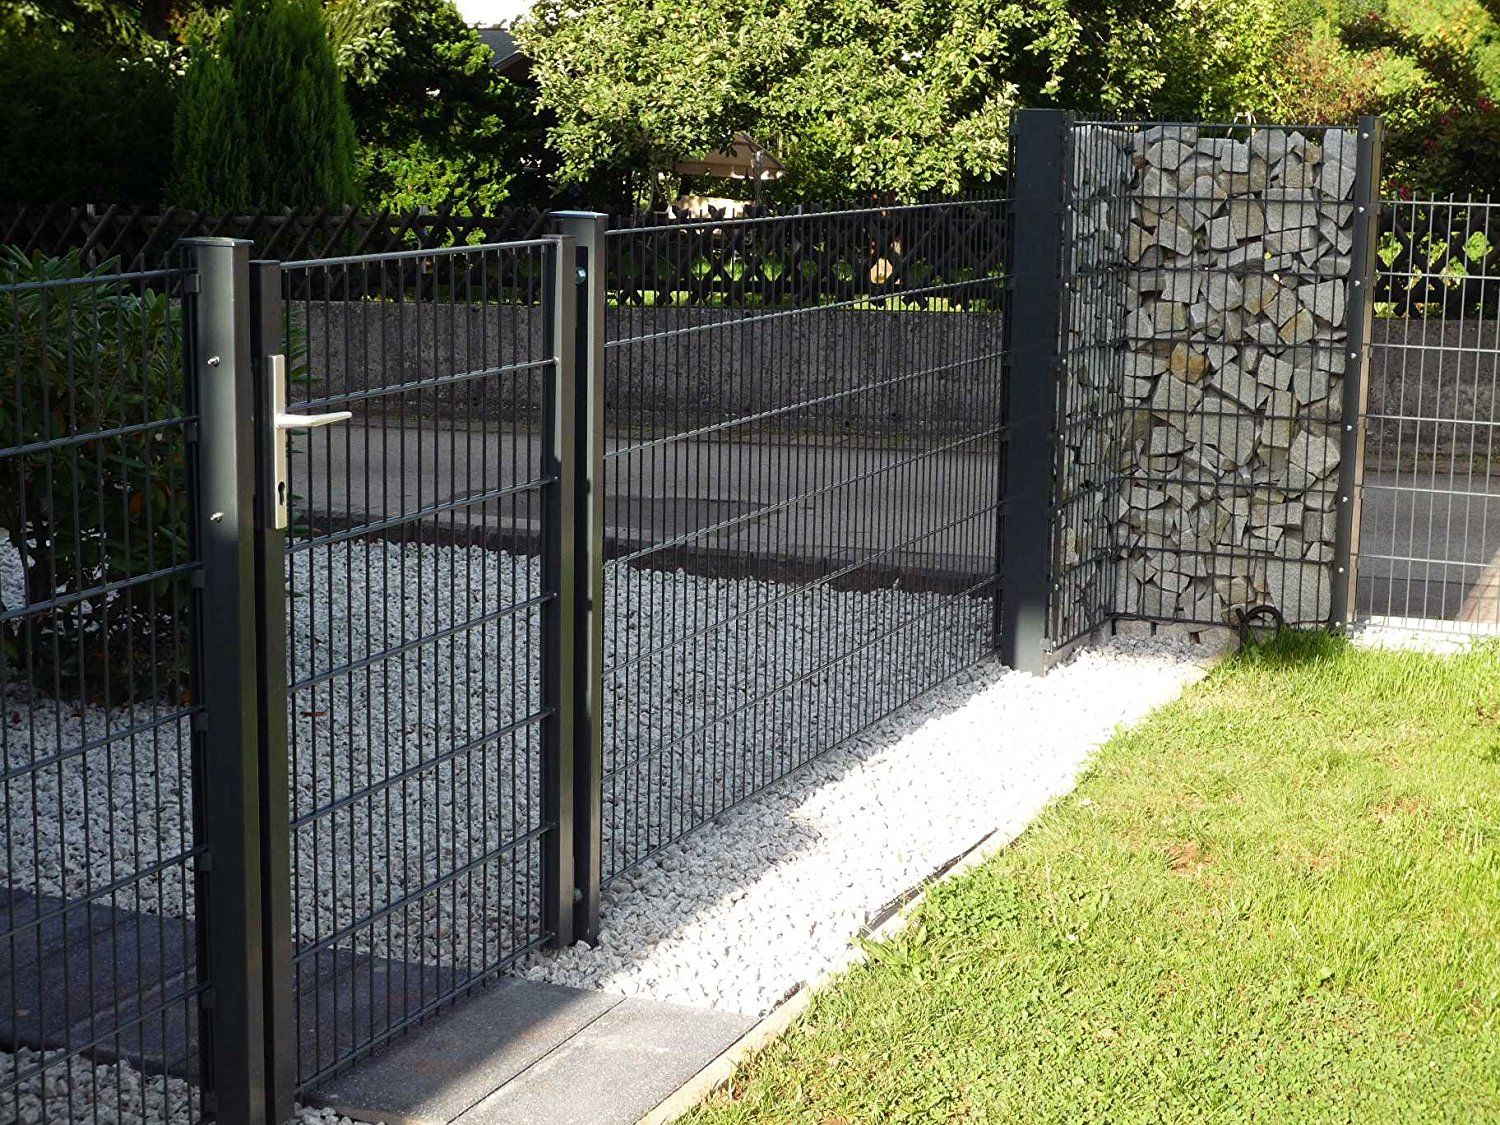 Garten Zaun Metall Gartenzaun Aus Metall Gartenzaun Backyard Fences Diy Fence